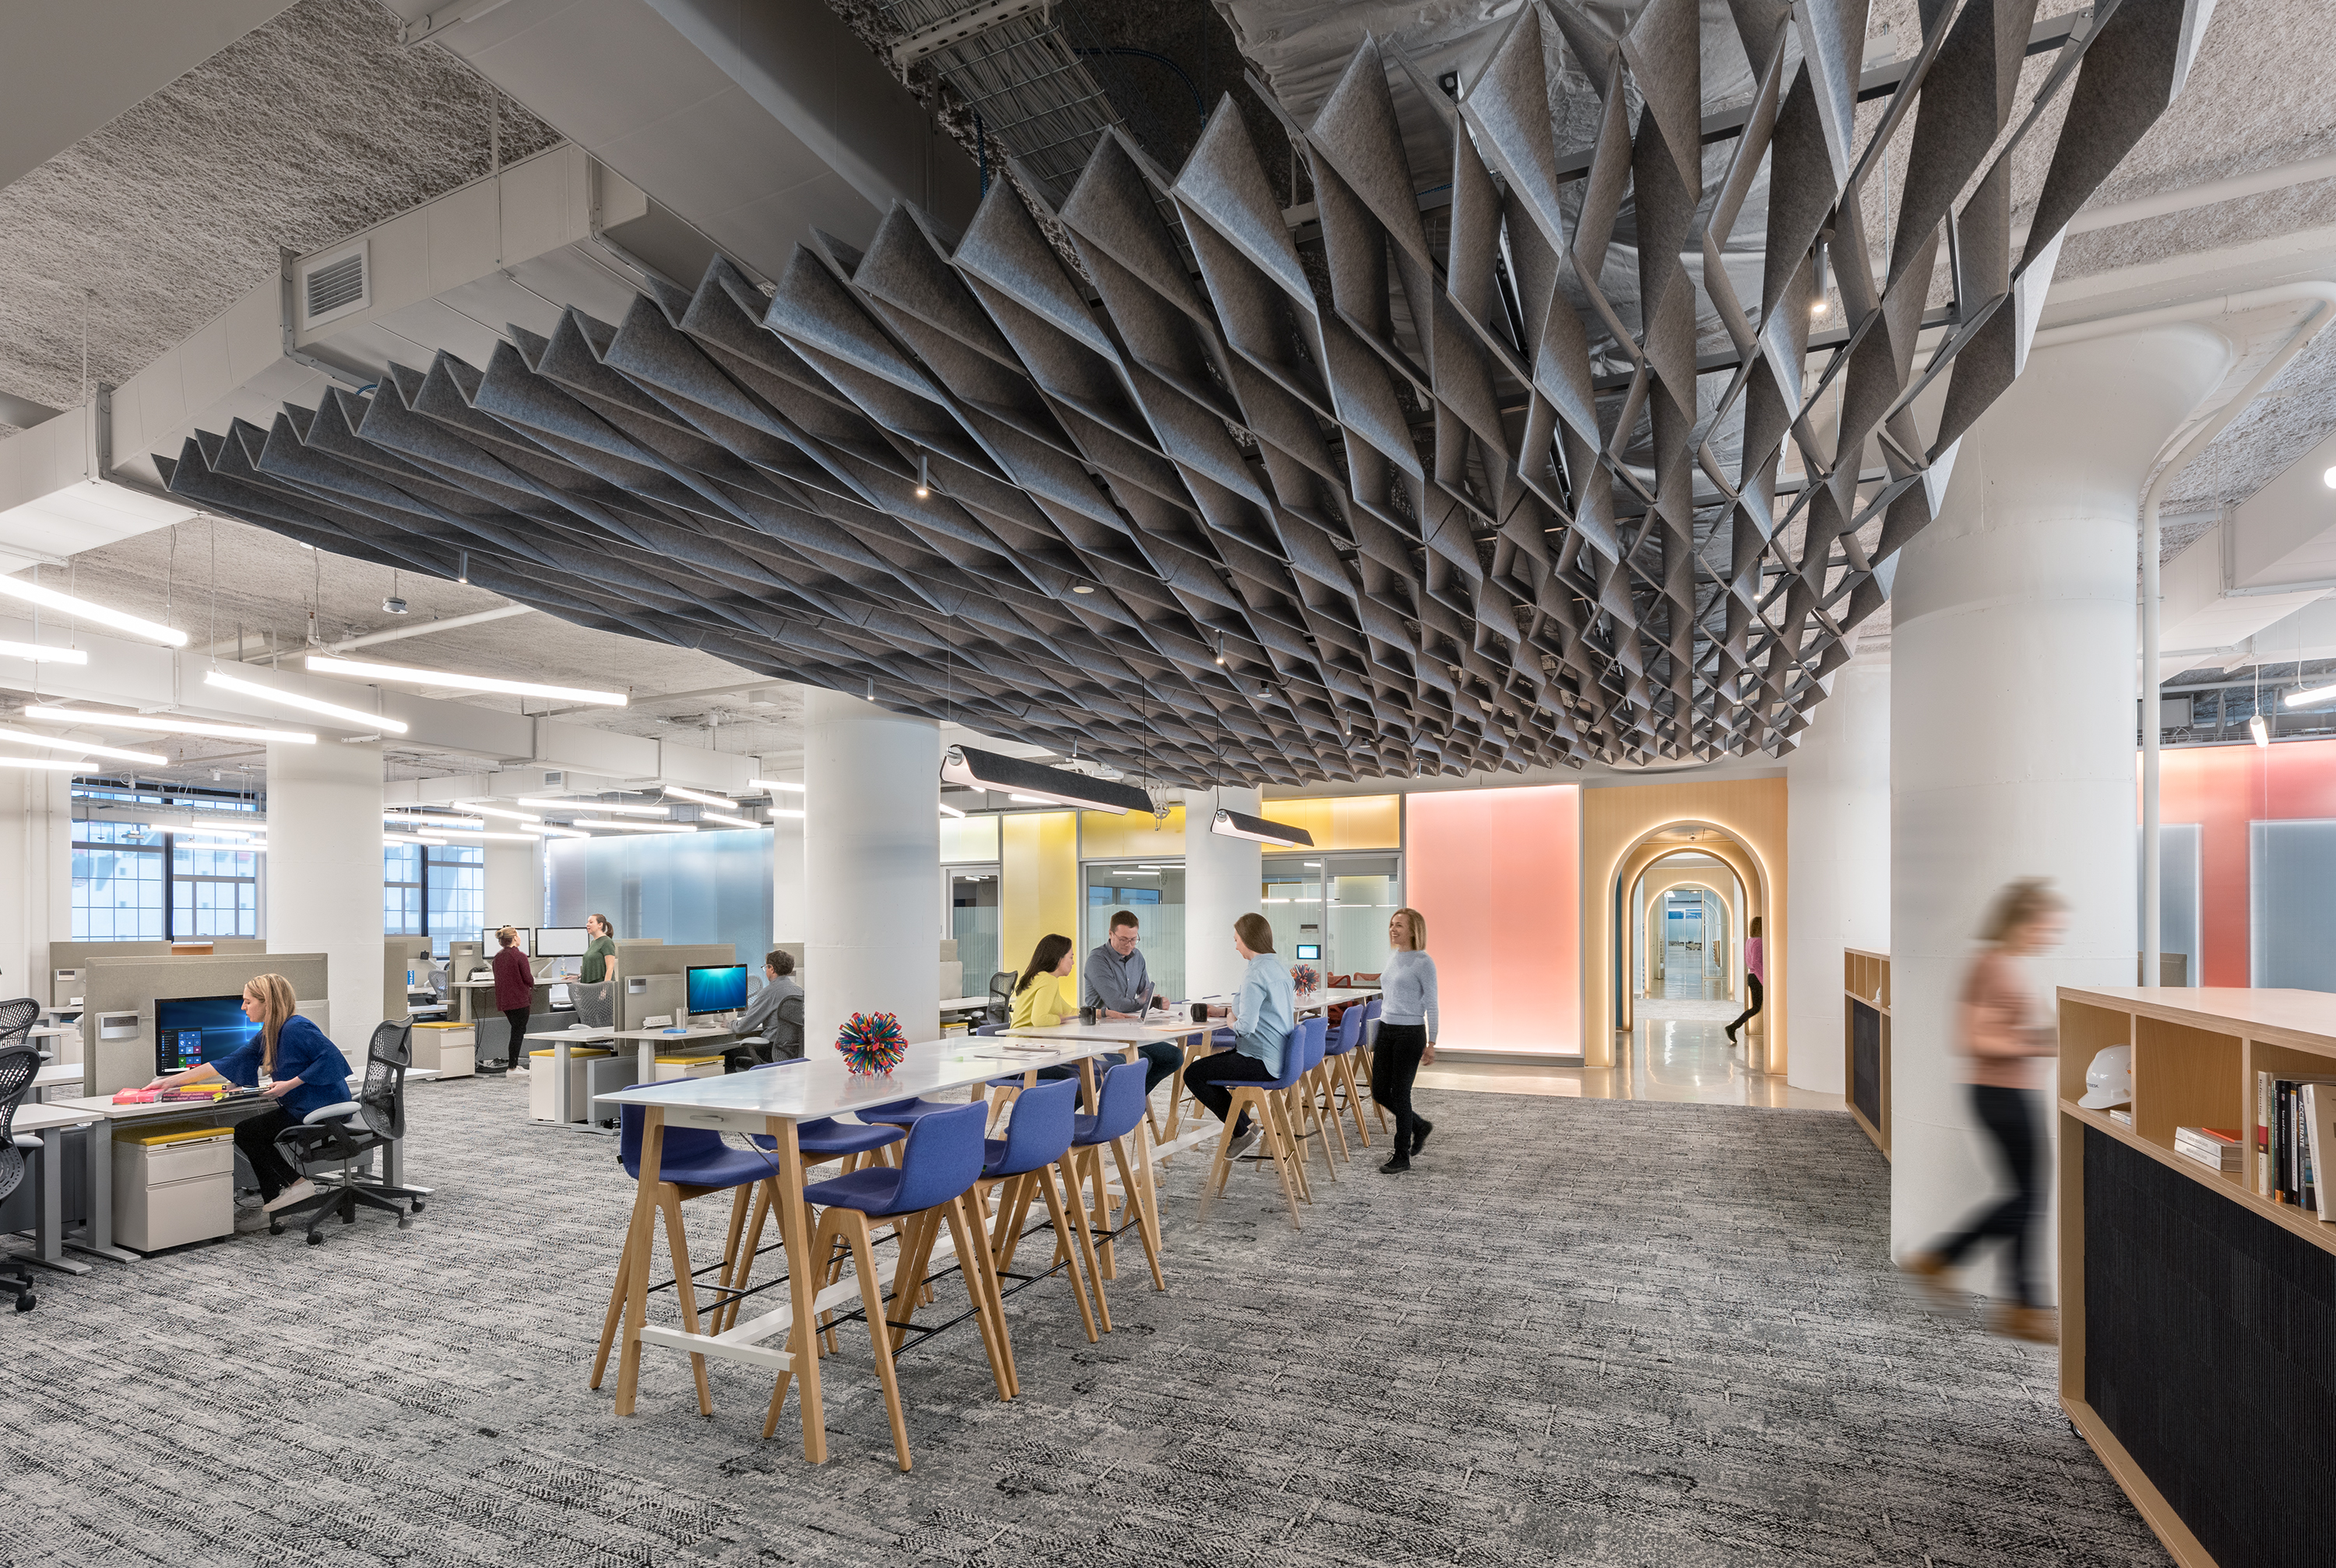 Autodesk Boston Workspace Expansion is an Architizer A+ Awards finalist – please vote!